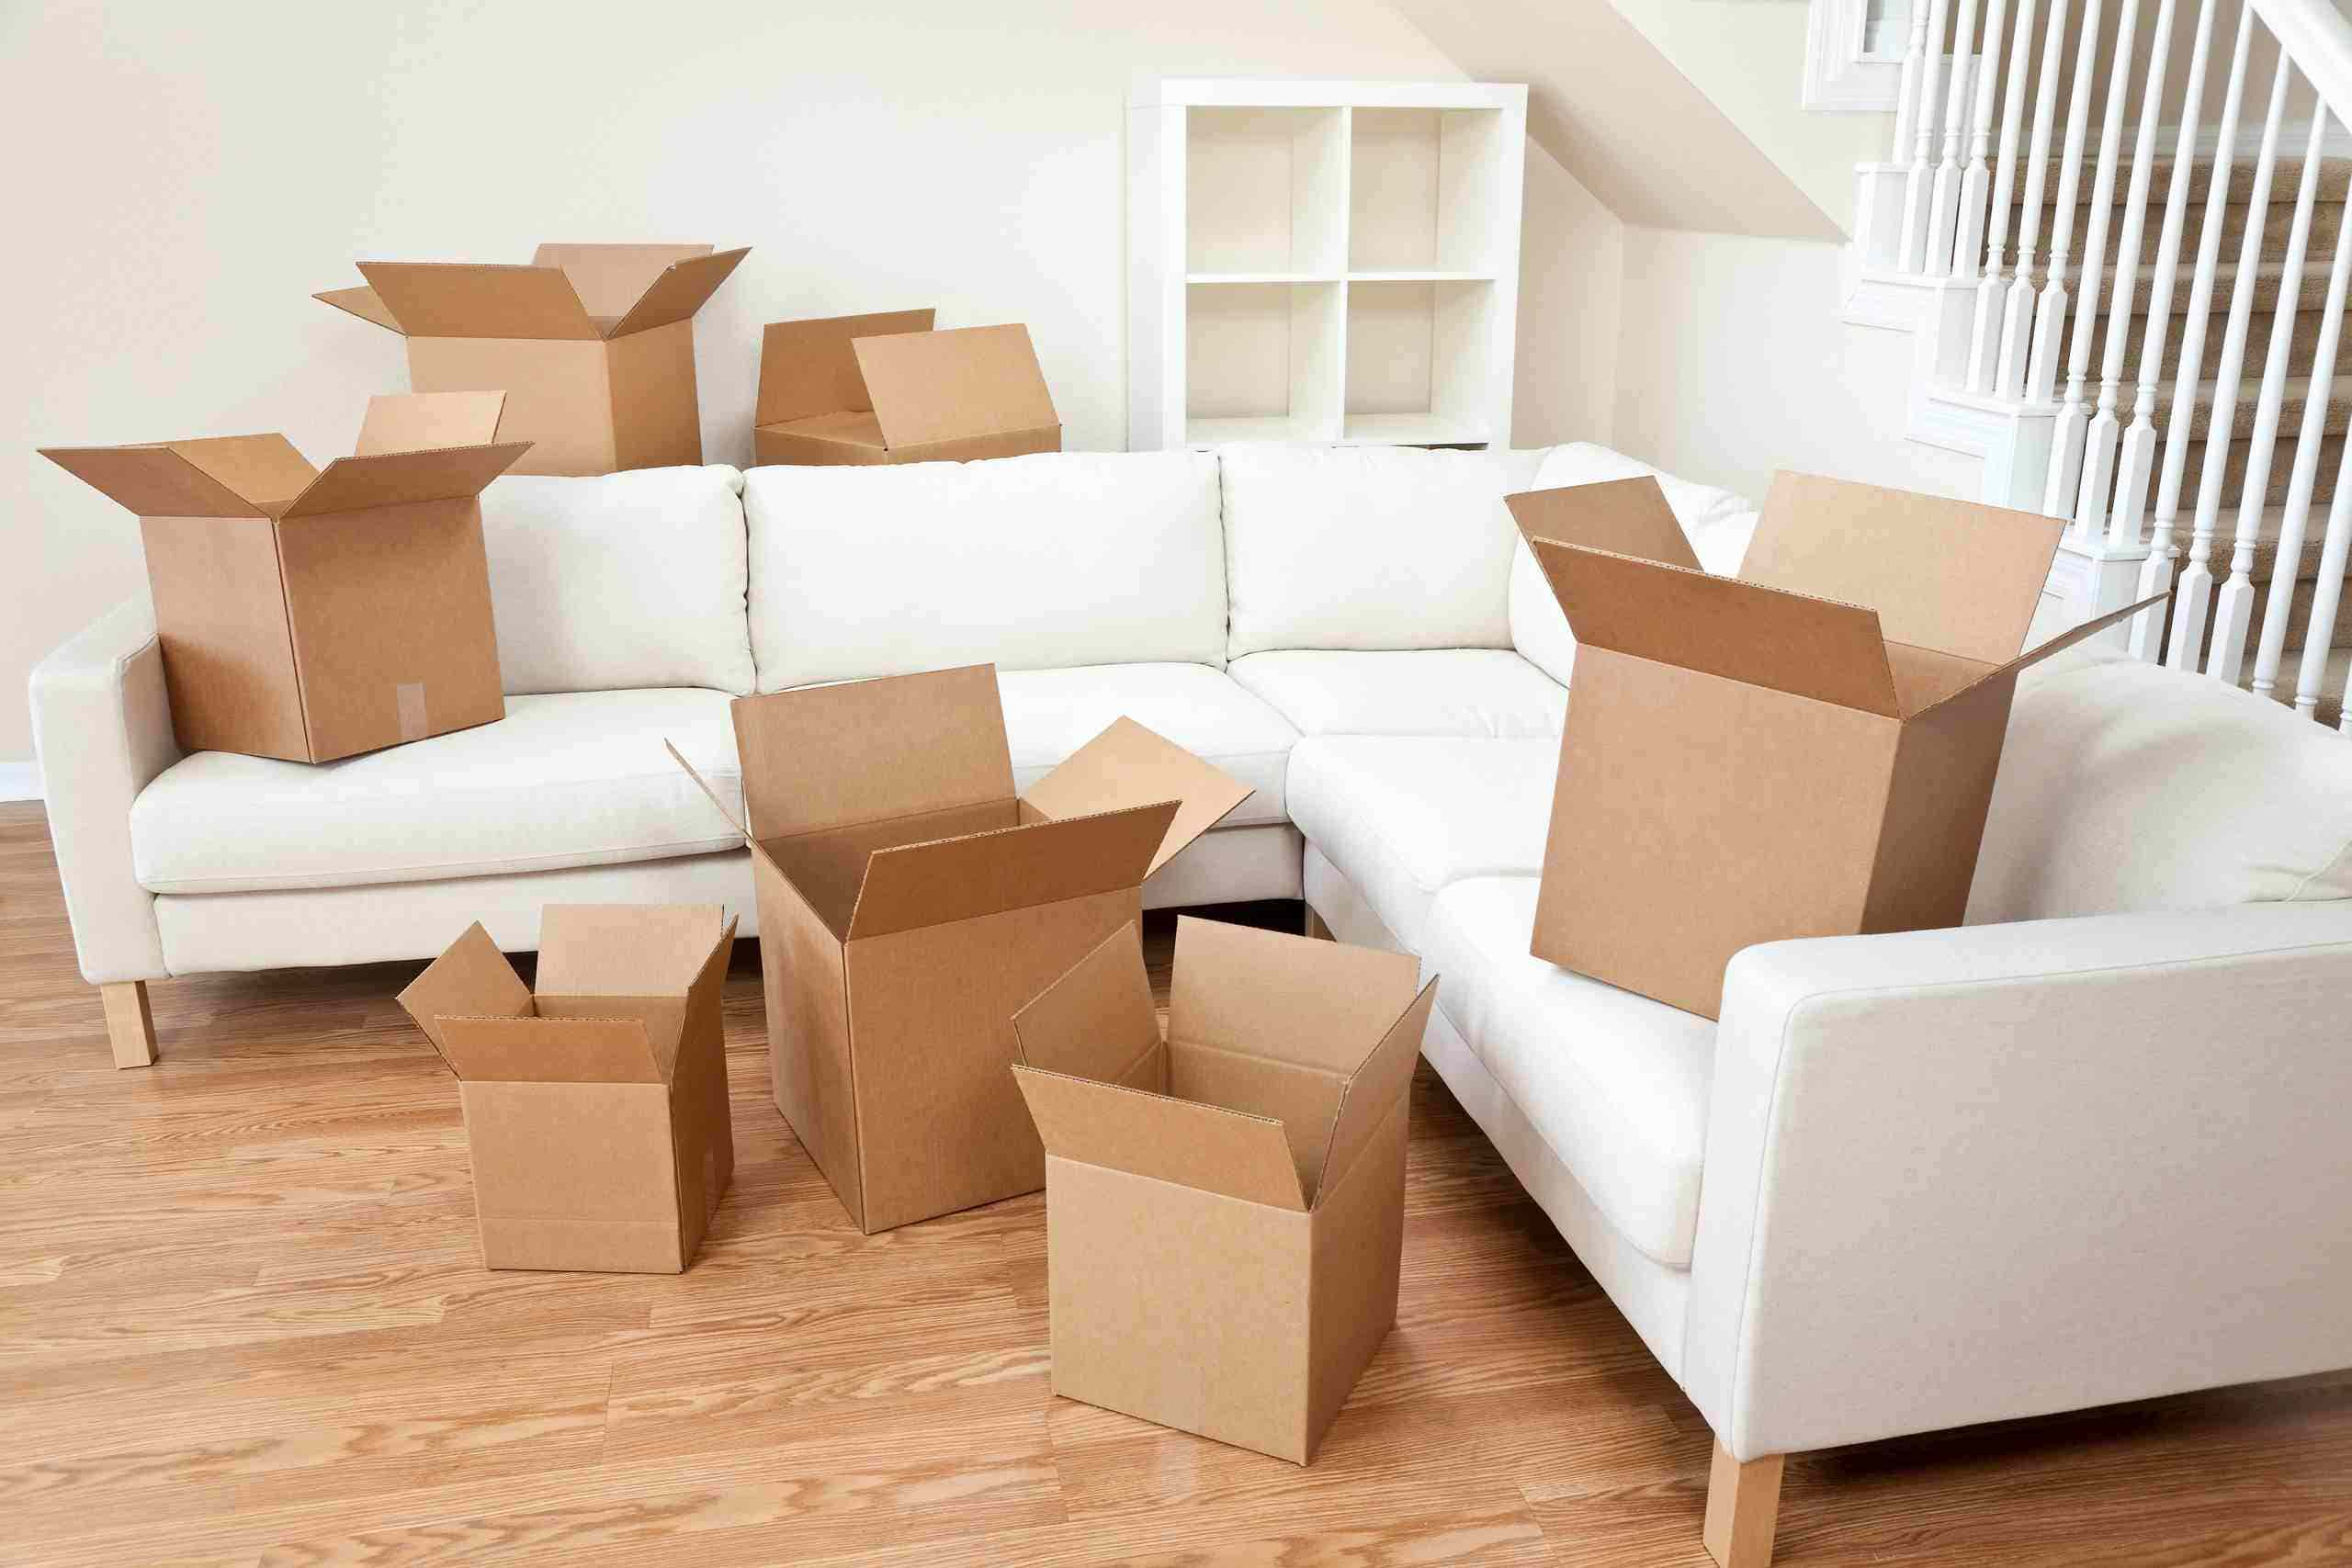 empty boxes on sofa and floor